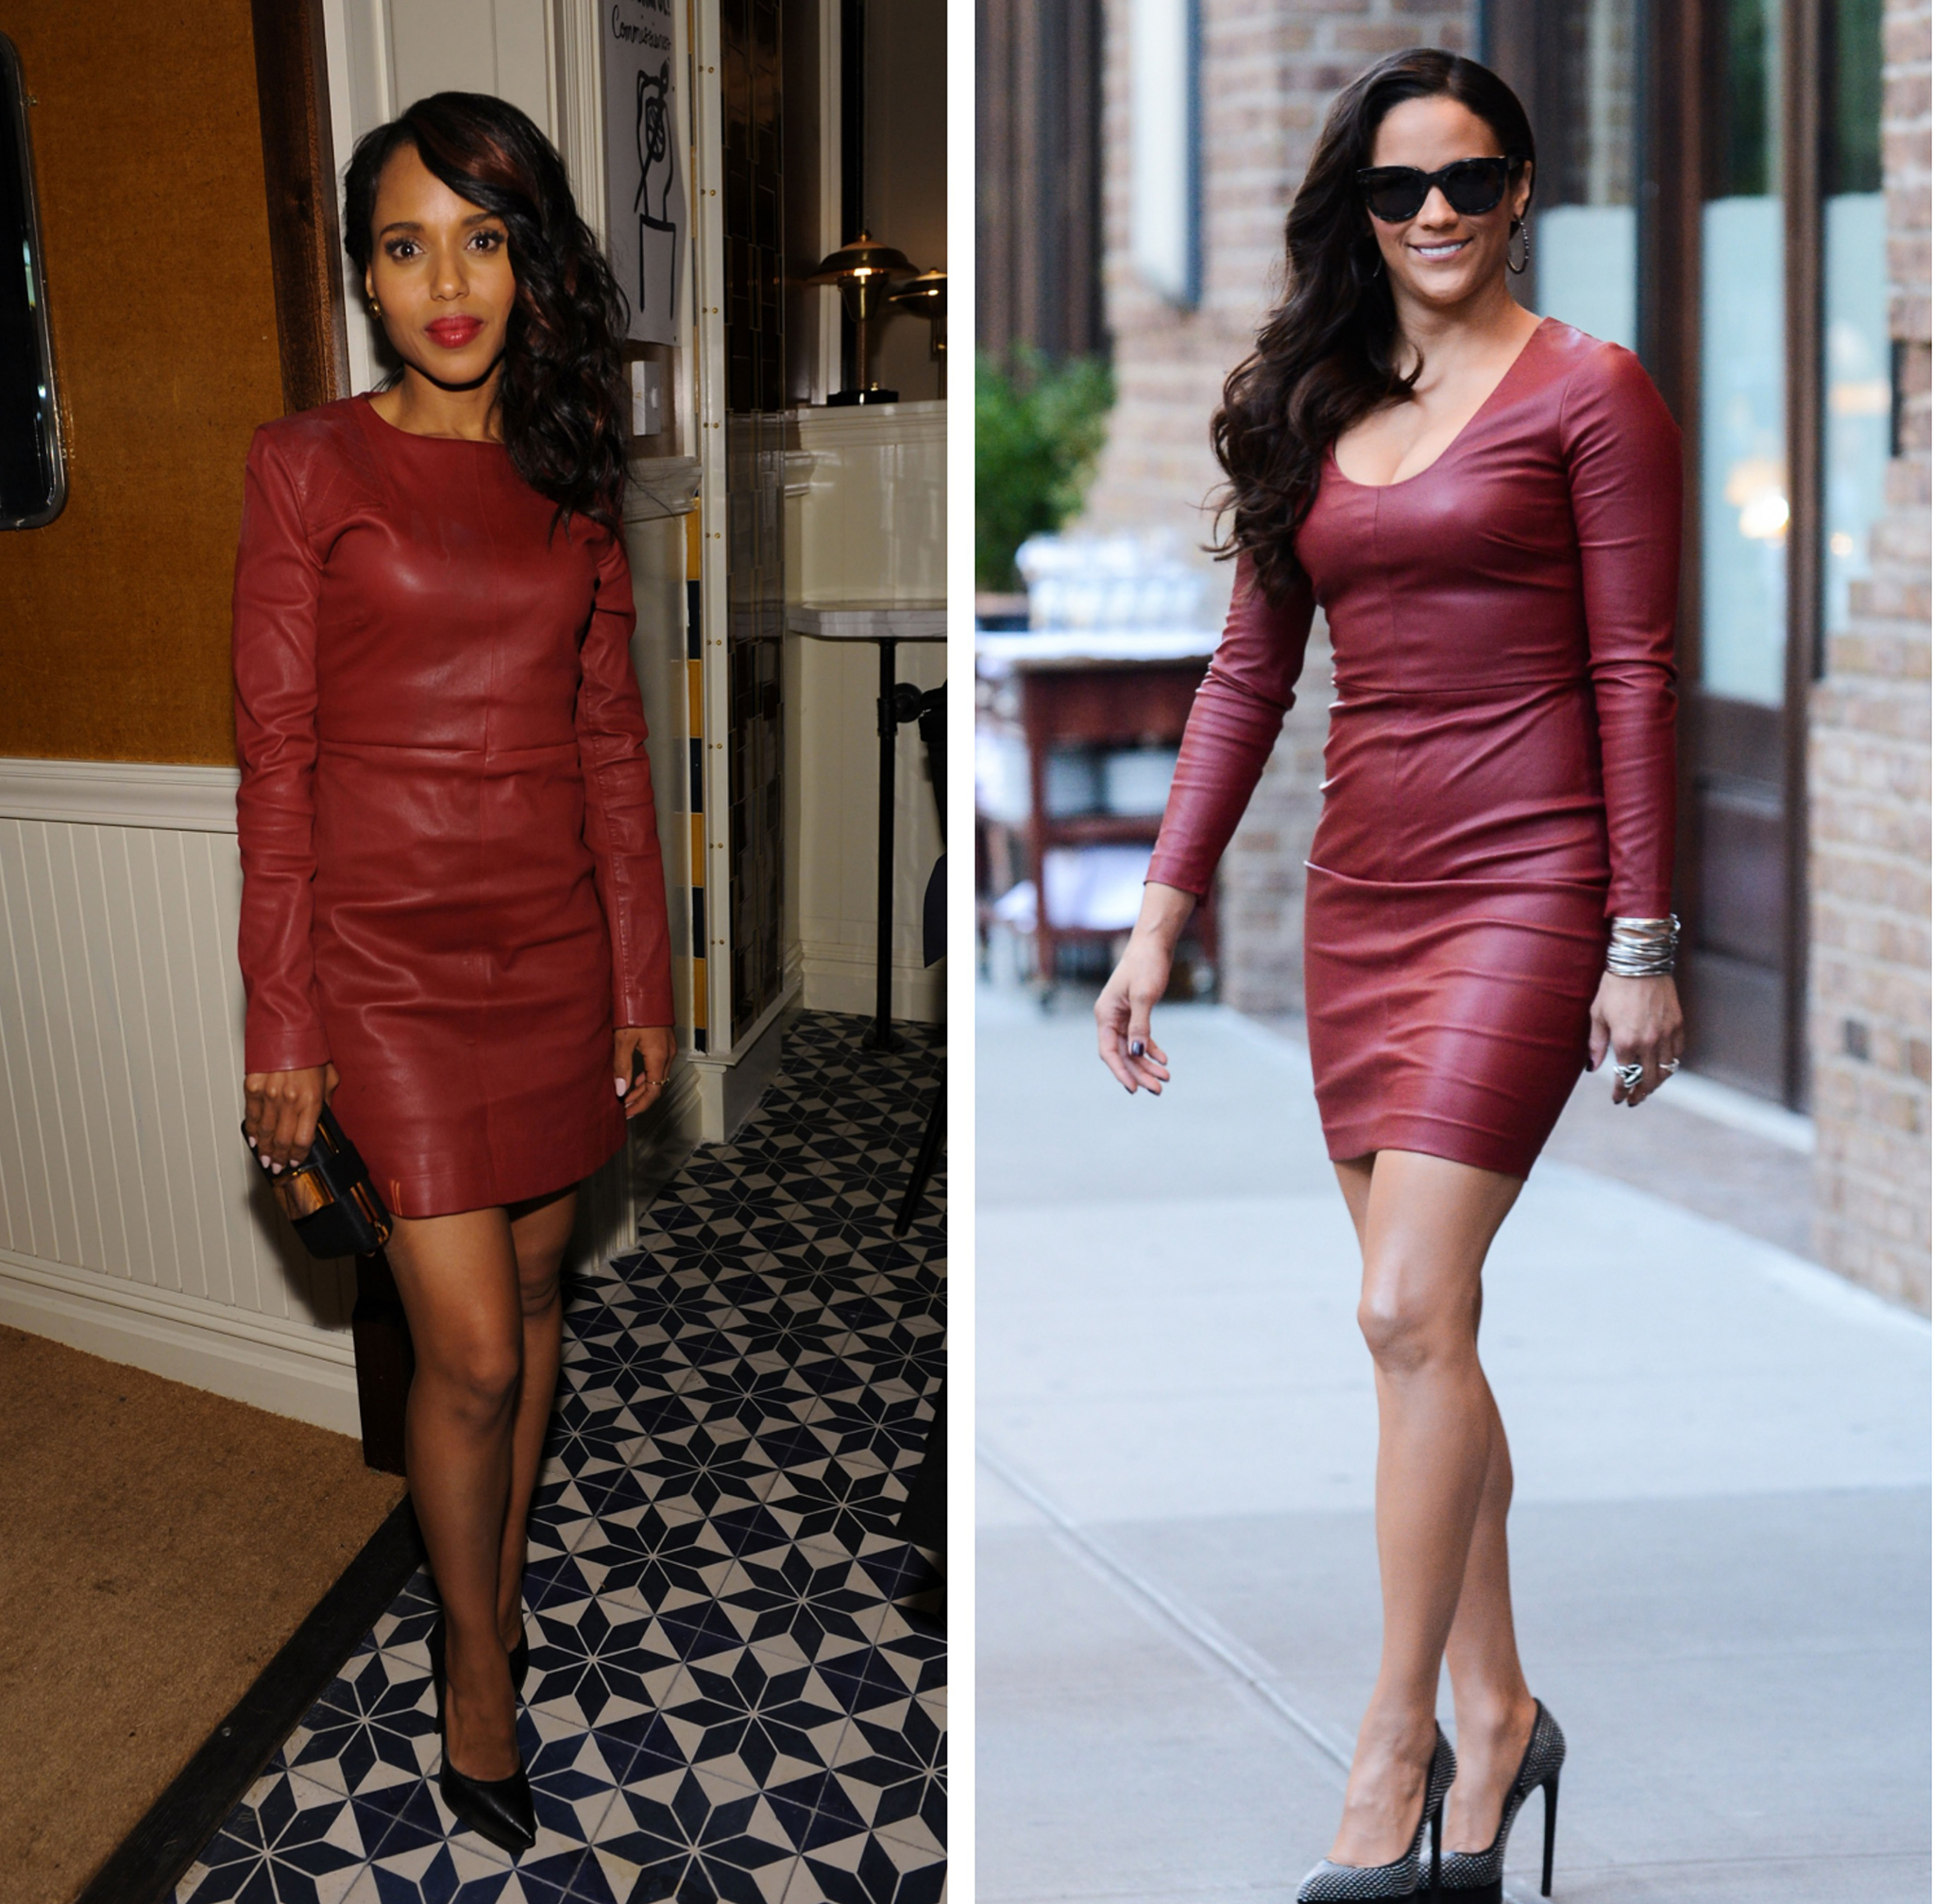 Kerry Washington vs. Paula Patton (Getty)